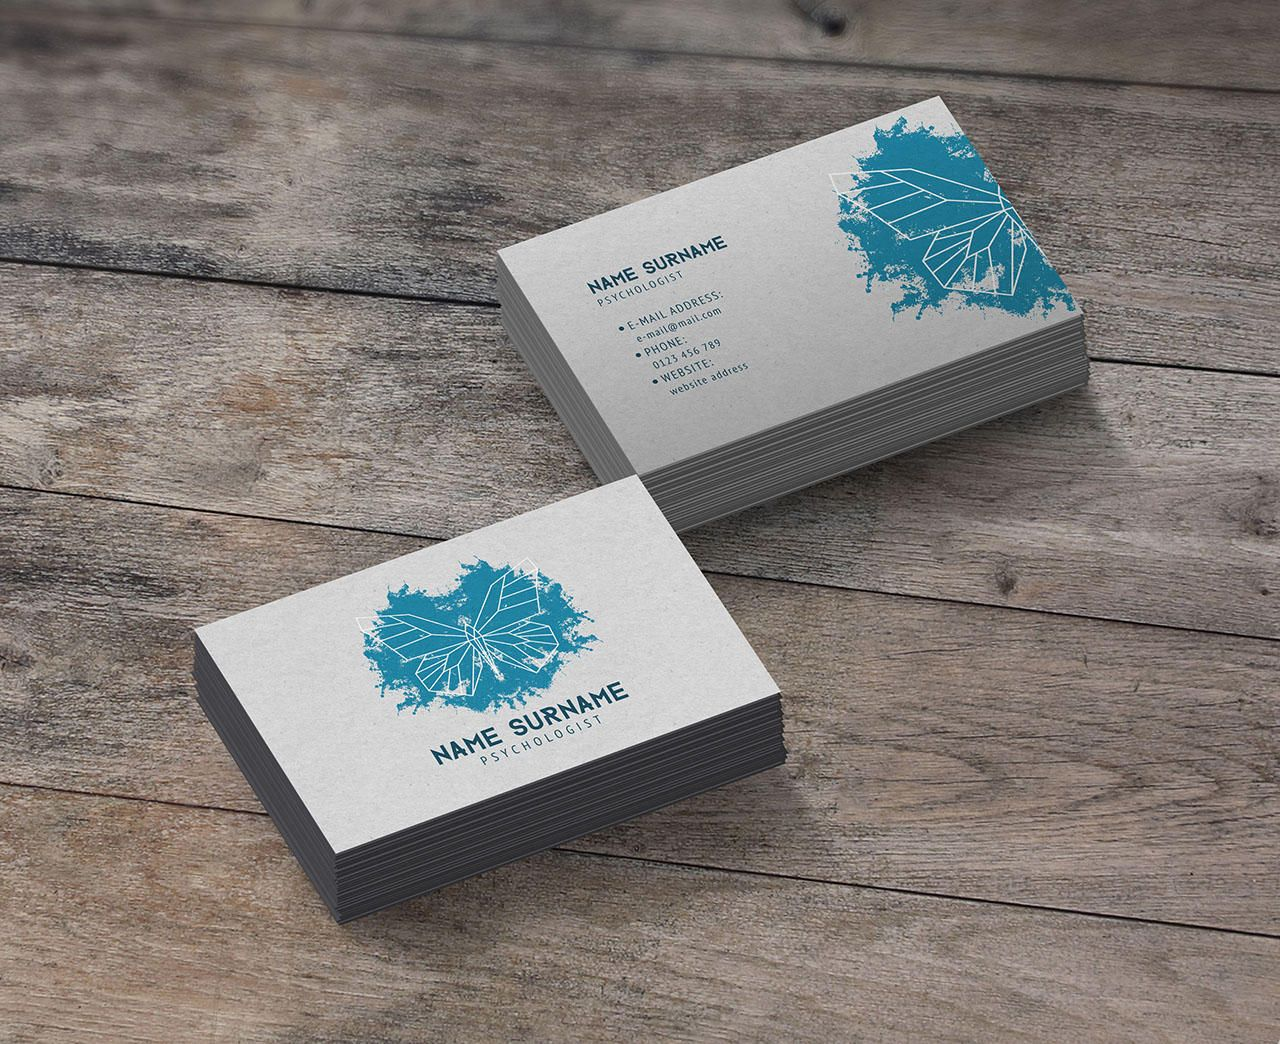 Professional Business Card Design By Geanine87 On Envato Studio Psychologist Business Card Psychologist Business Cards